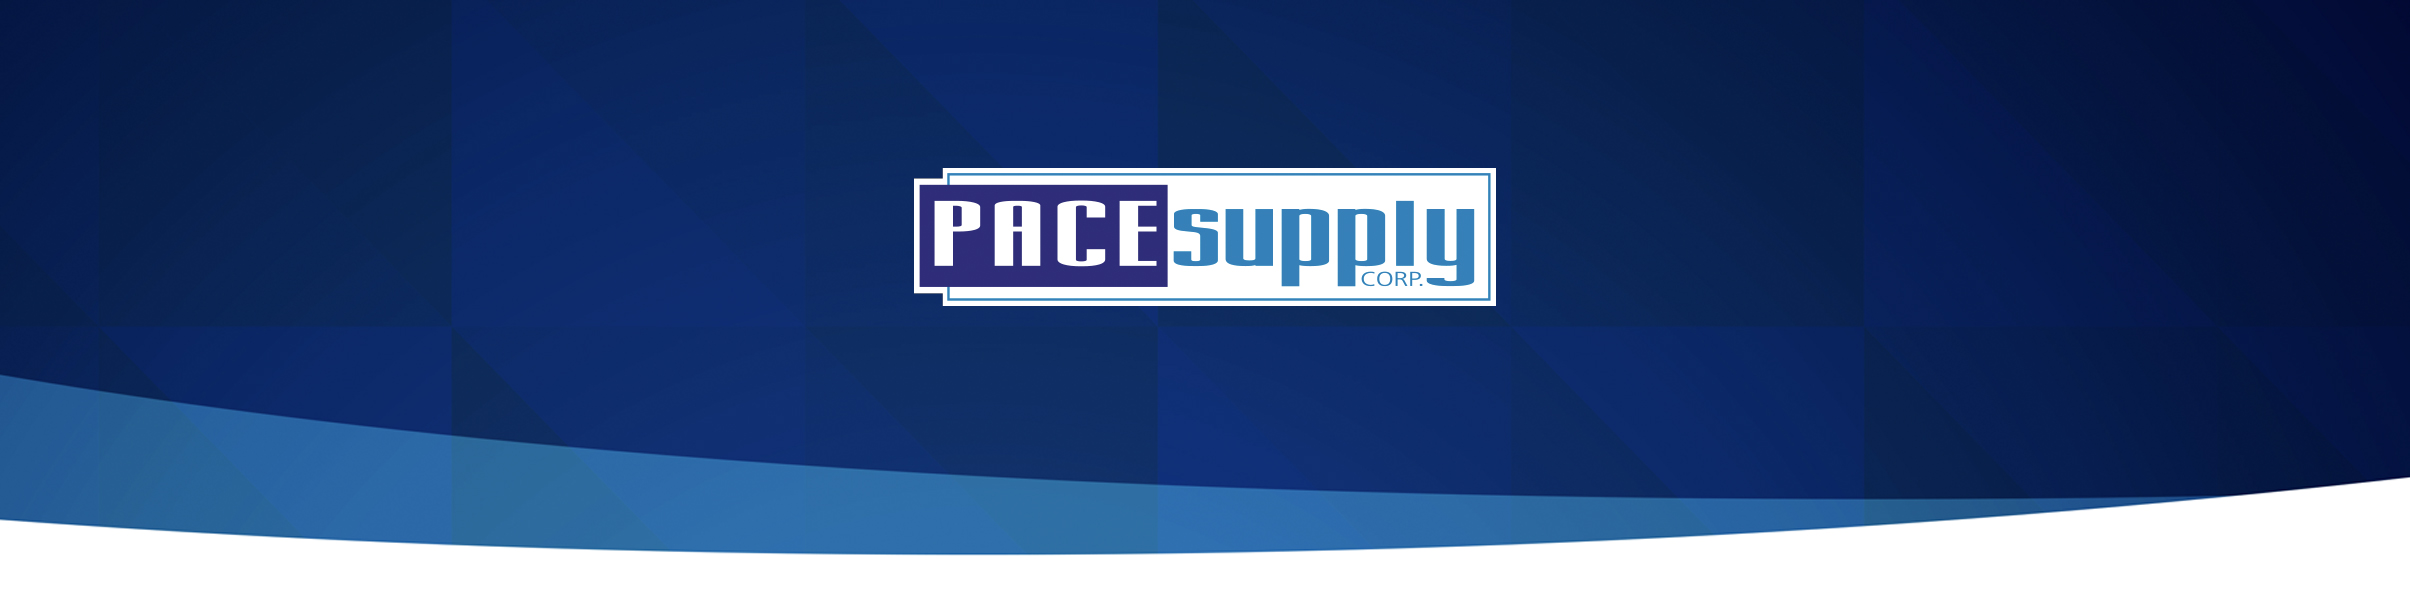 PACE Supply Media Release